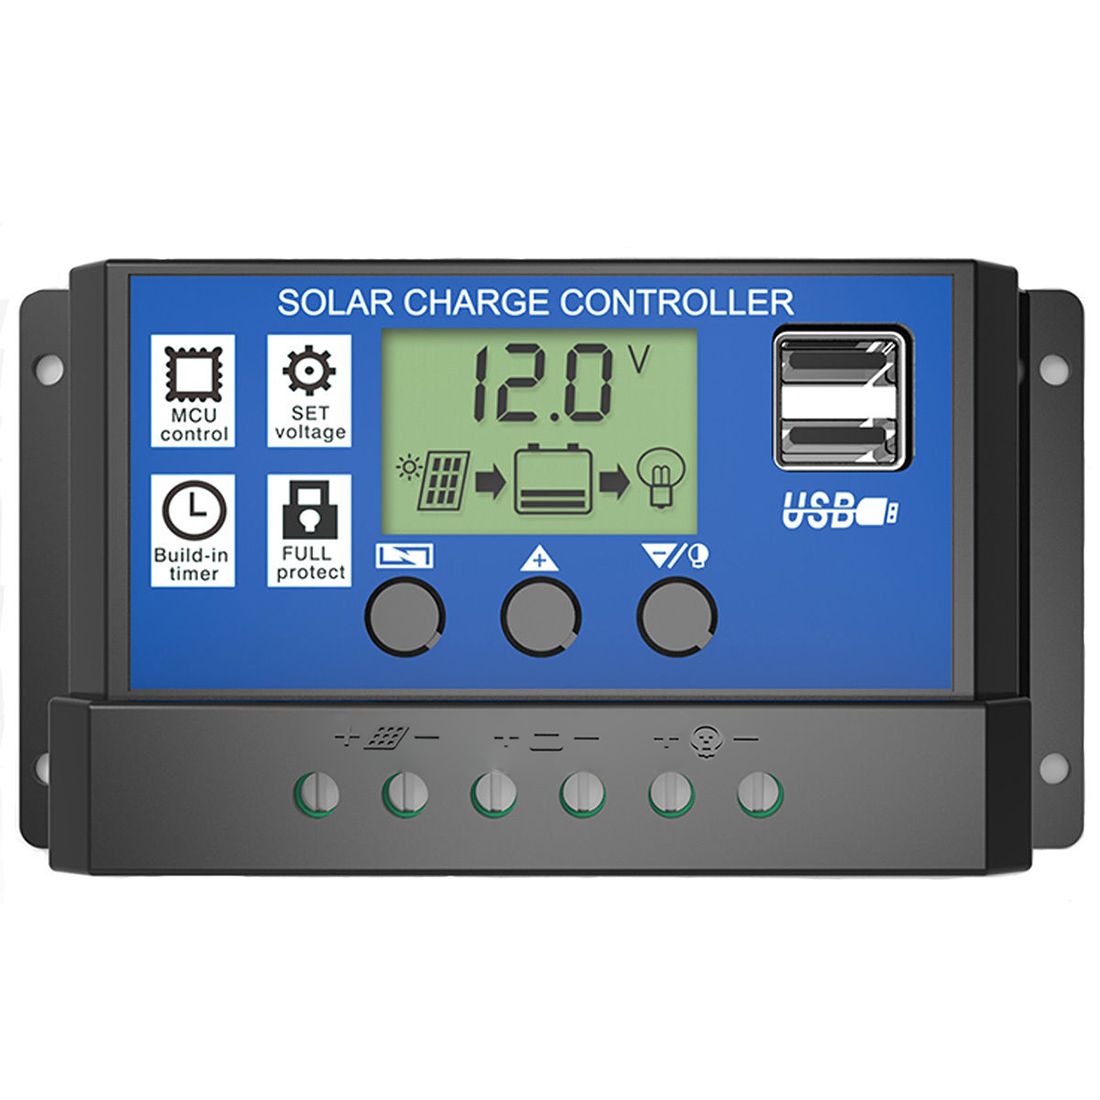 Pwm 10 20 30a Solar Charge Controller 12v 24v Lcd Display